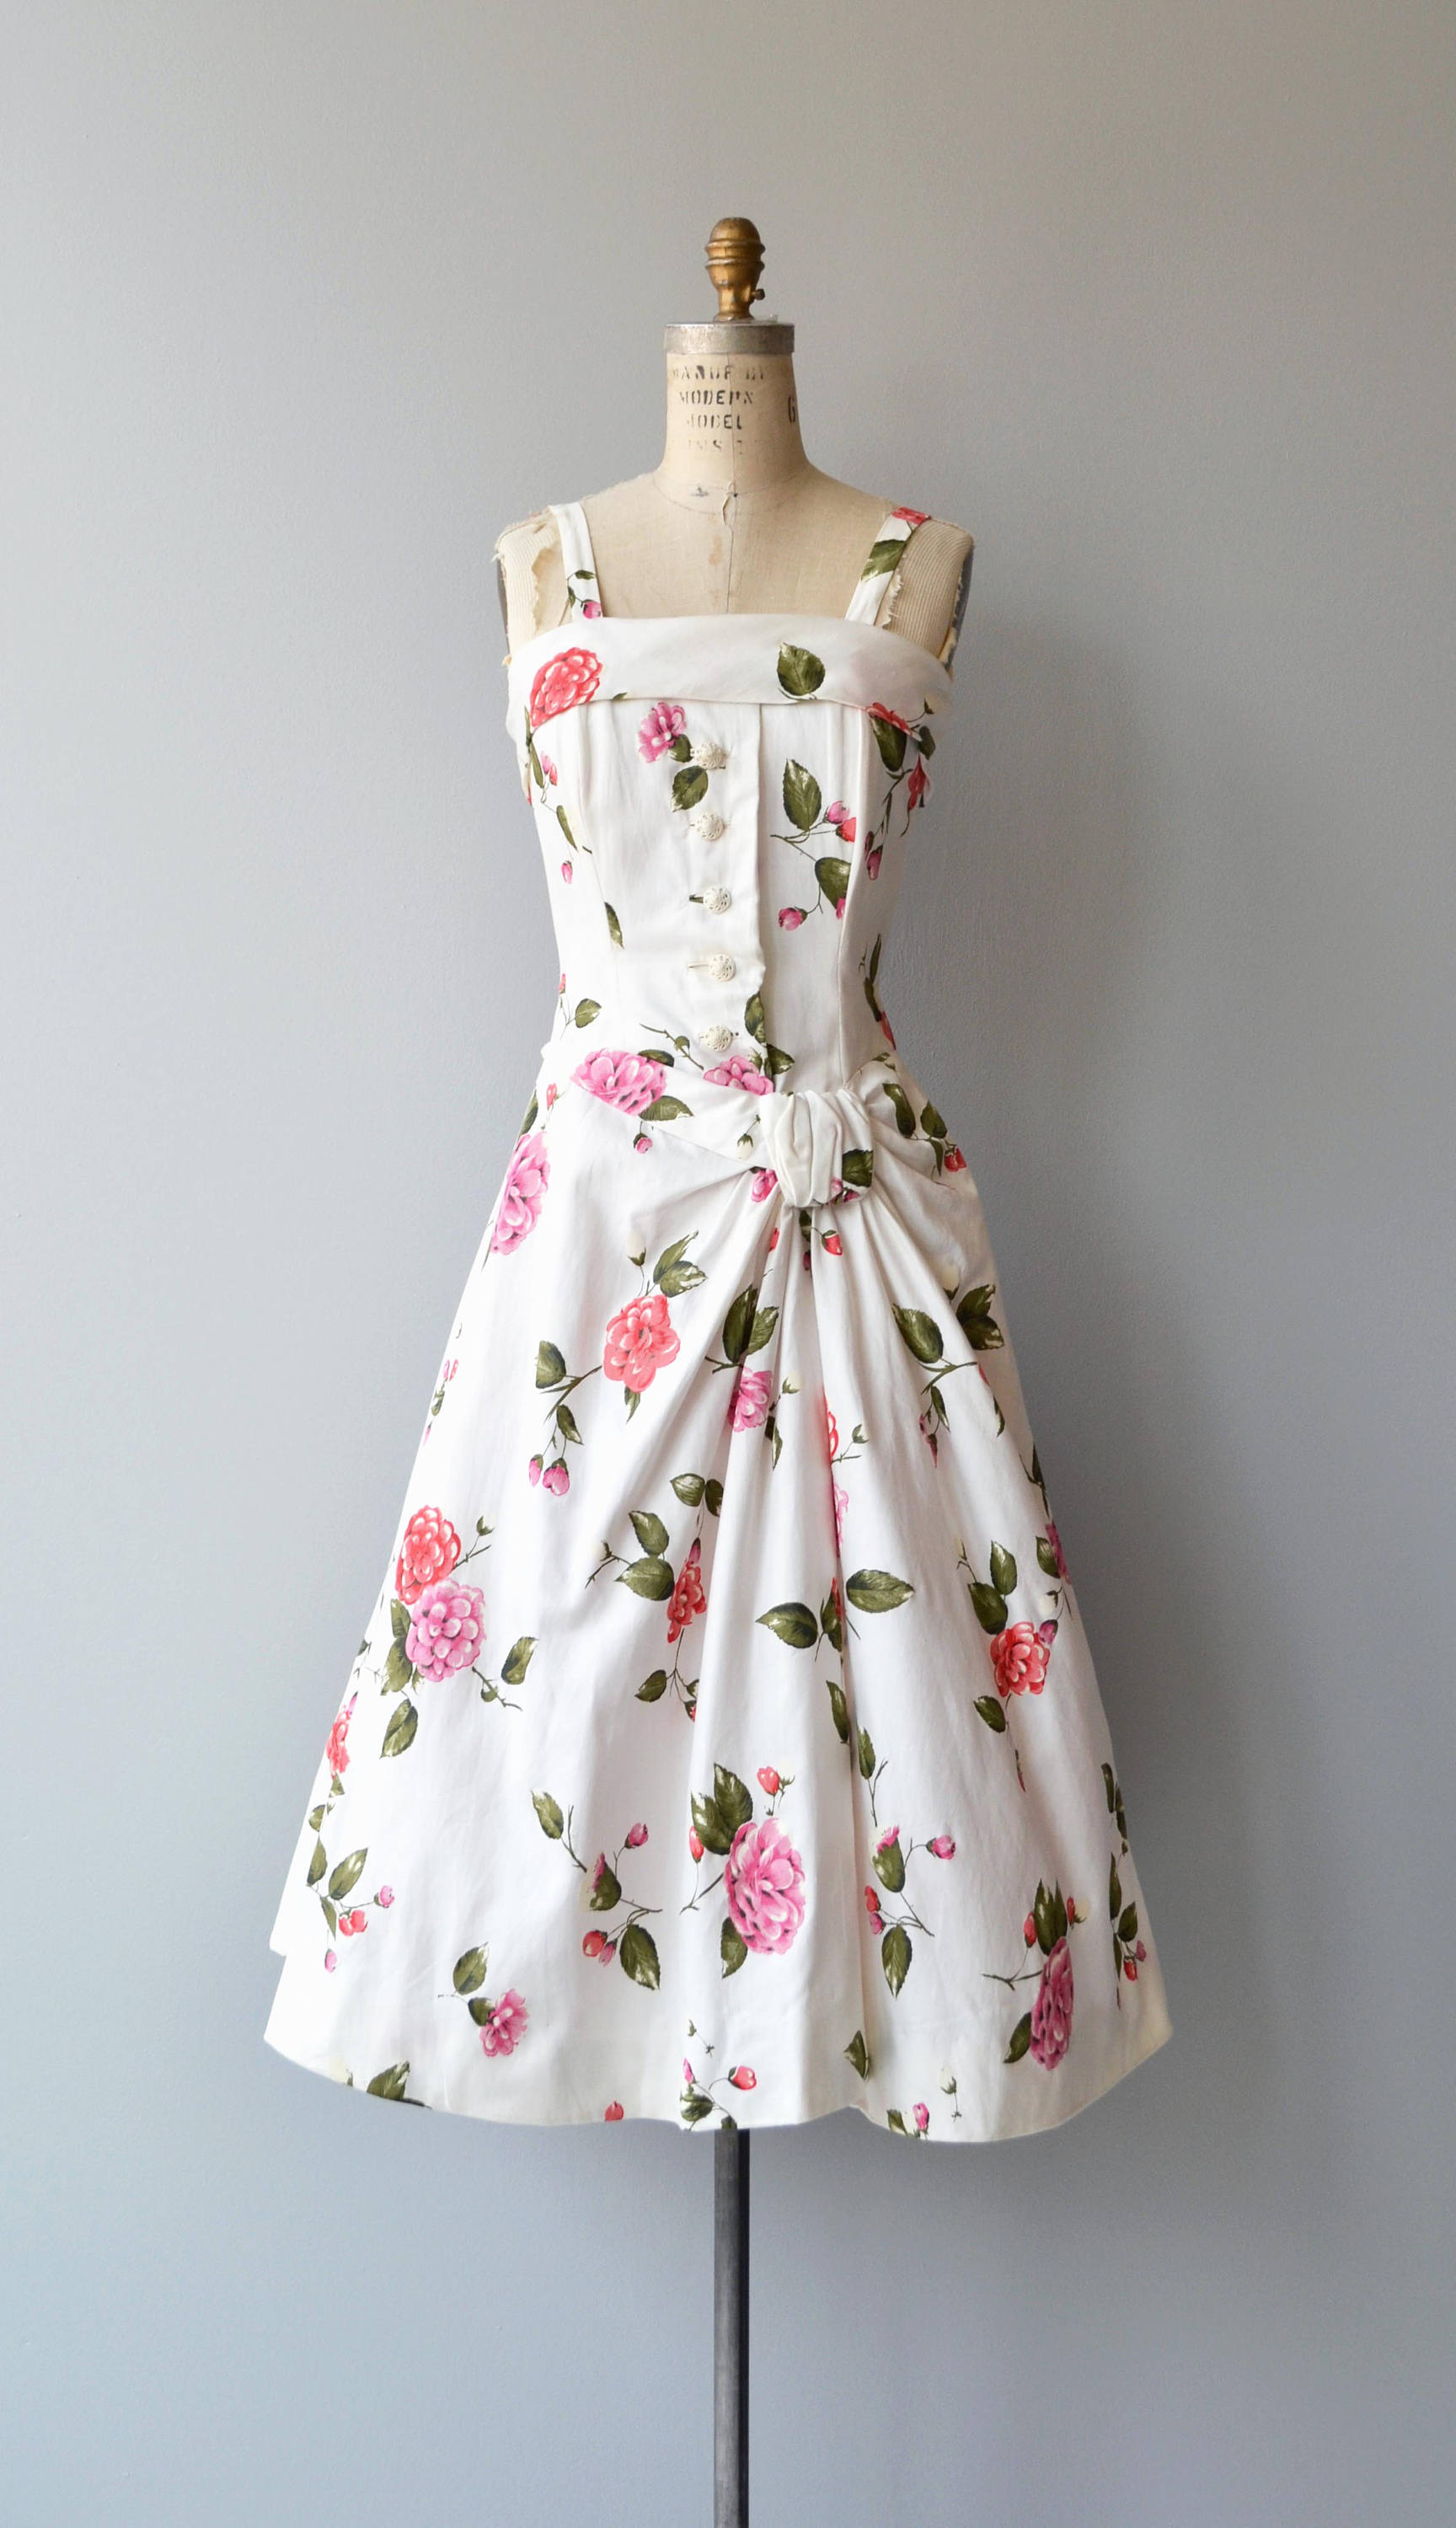 1950s Floral Cotton Dress with Hip Detail via Etsy